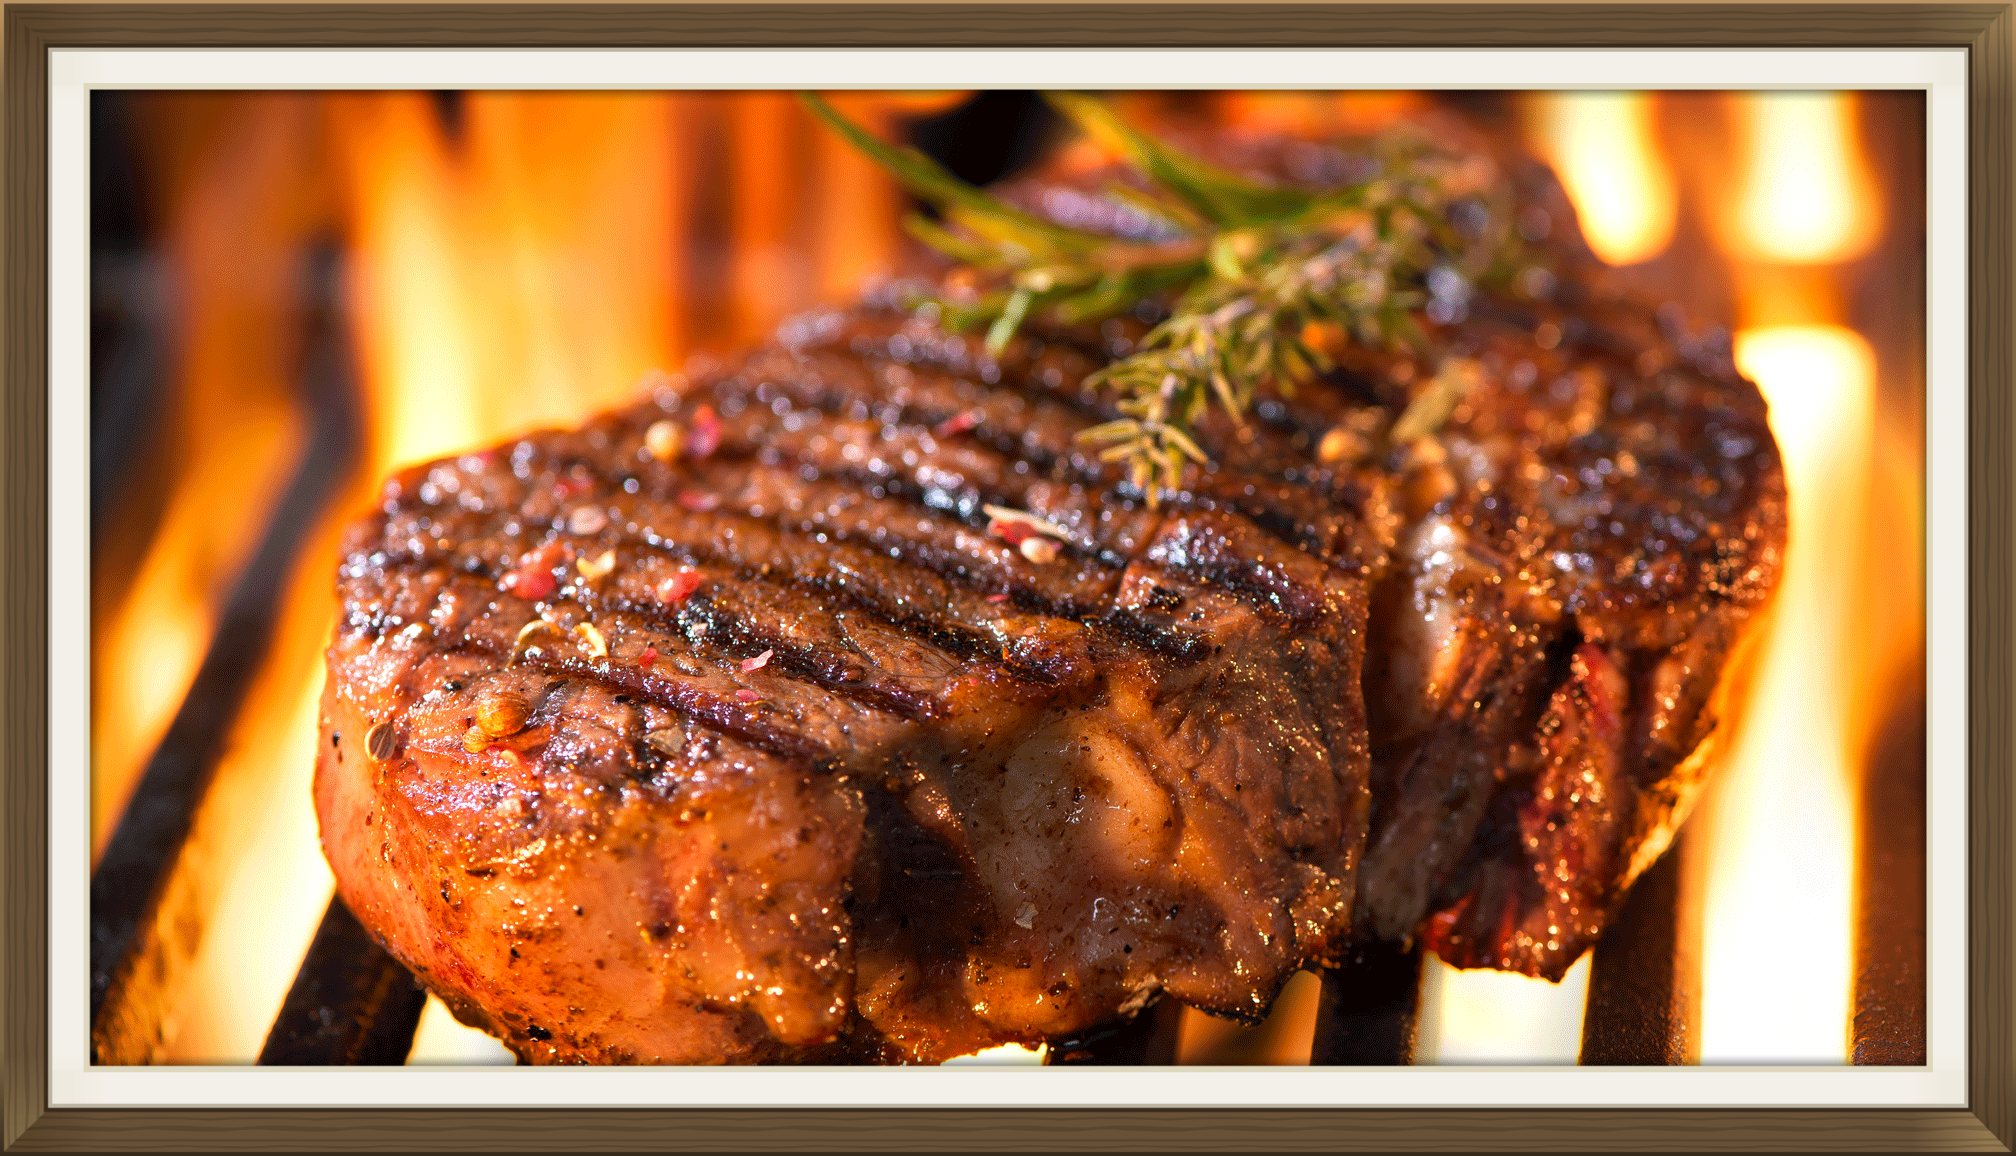 Steaks, Burgers, Chicken, Kabobs - Ledyard Village Market is your summer grilling headquarters.